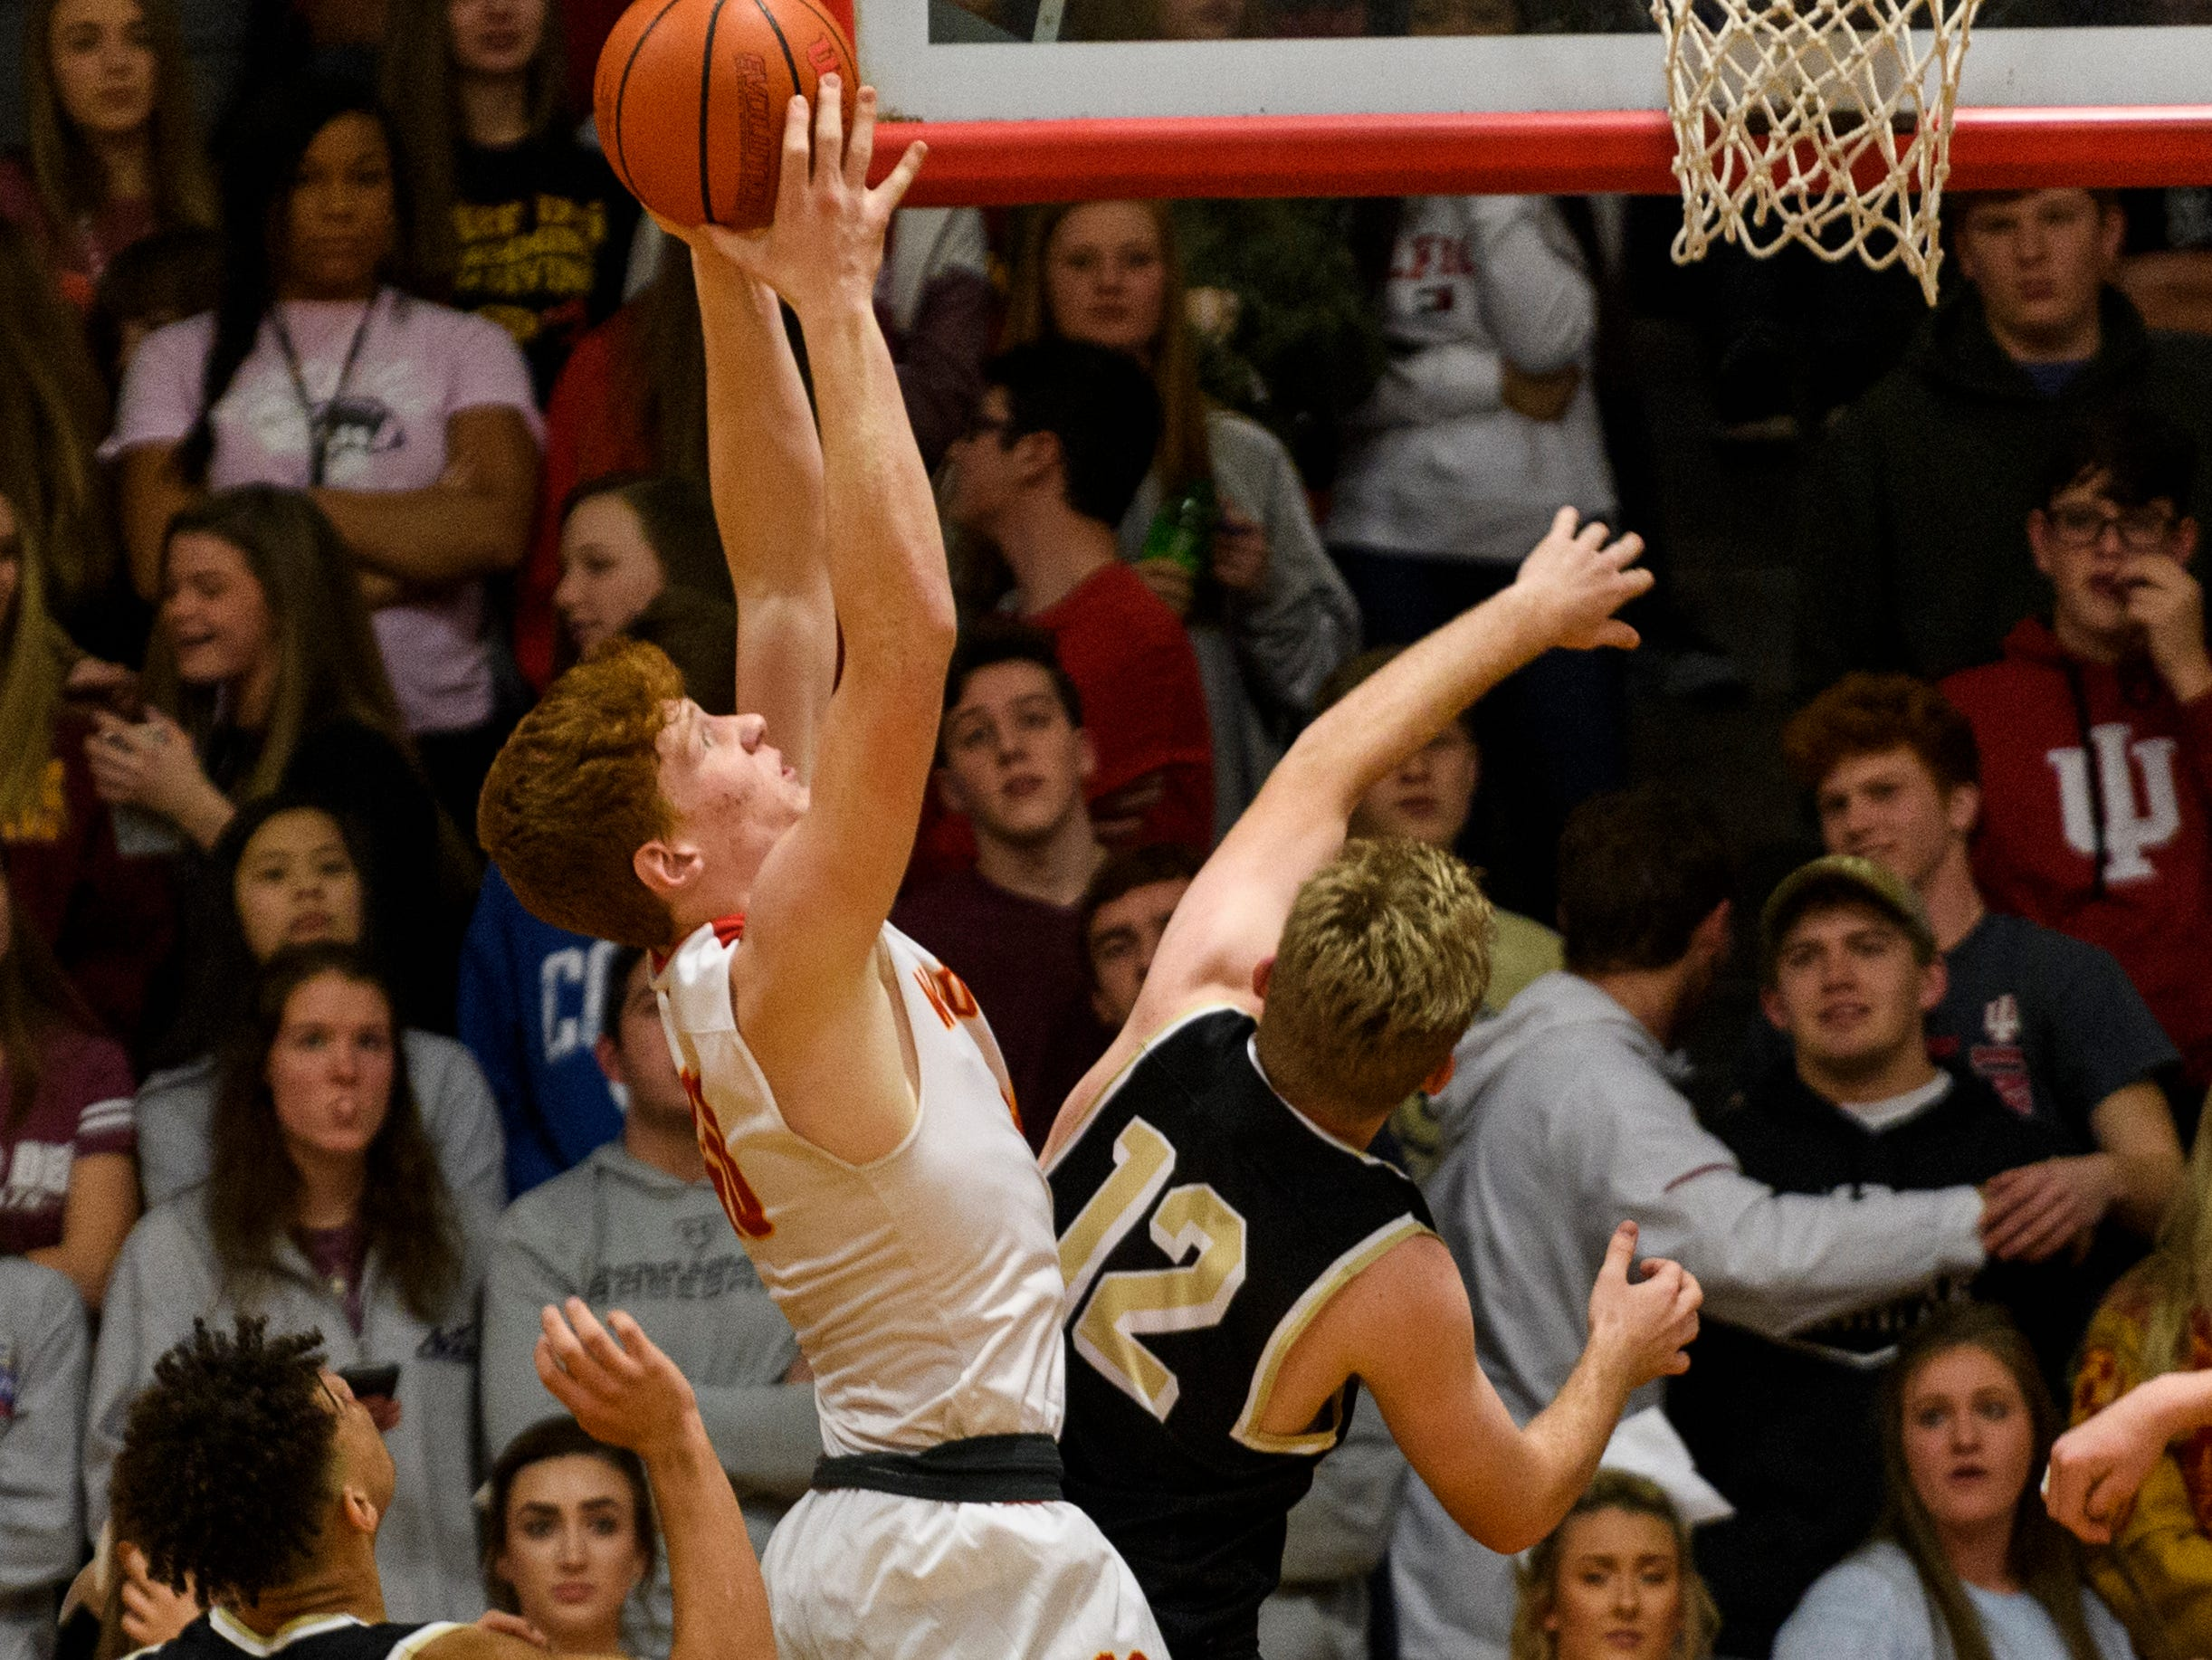 Mater Dei's Alex Money (40) gets the rebound before Boonville's Ben Meier (12) or Devin Mockobee (5) during the second quarter at Mater Dei High School in Evansville, Ind., Saturday, Jan. 5, 2019. The Wildcats defeated the Pioneers, 93-65.